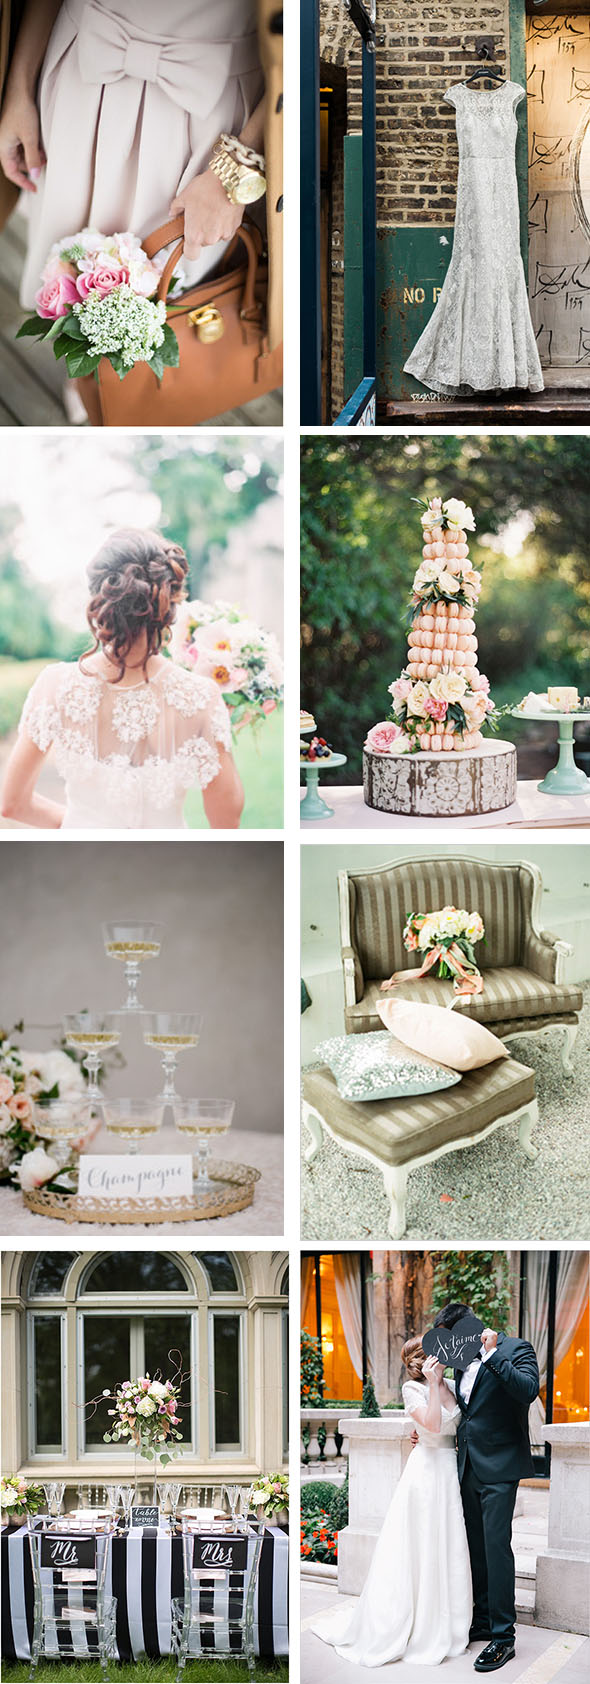 Parisian Wedding Inspiration